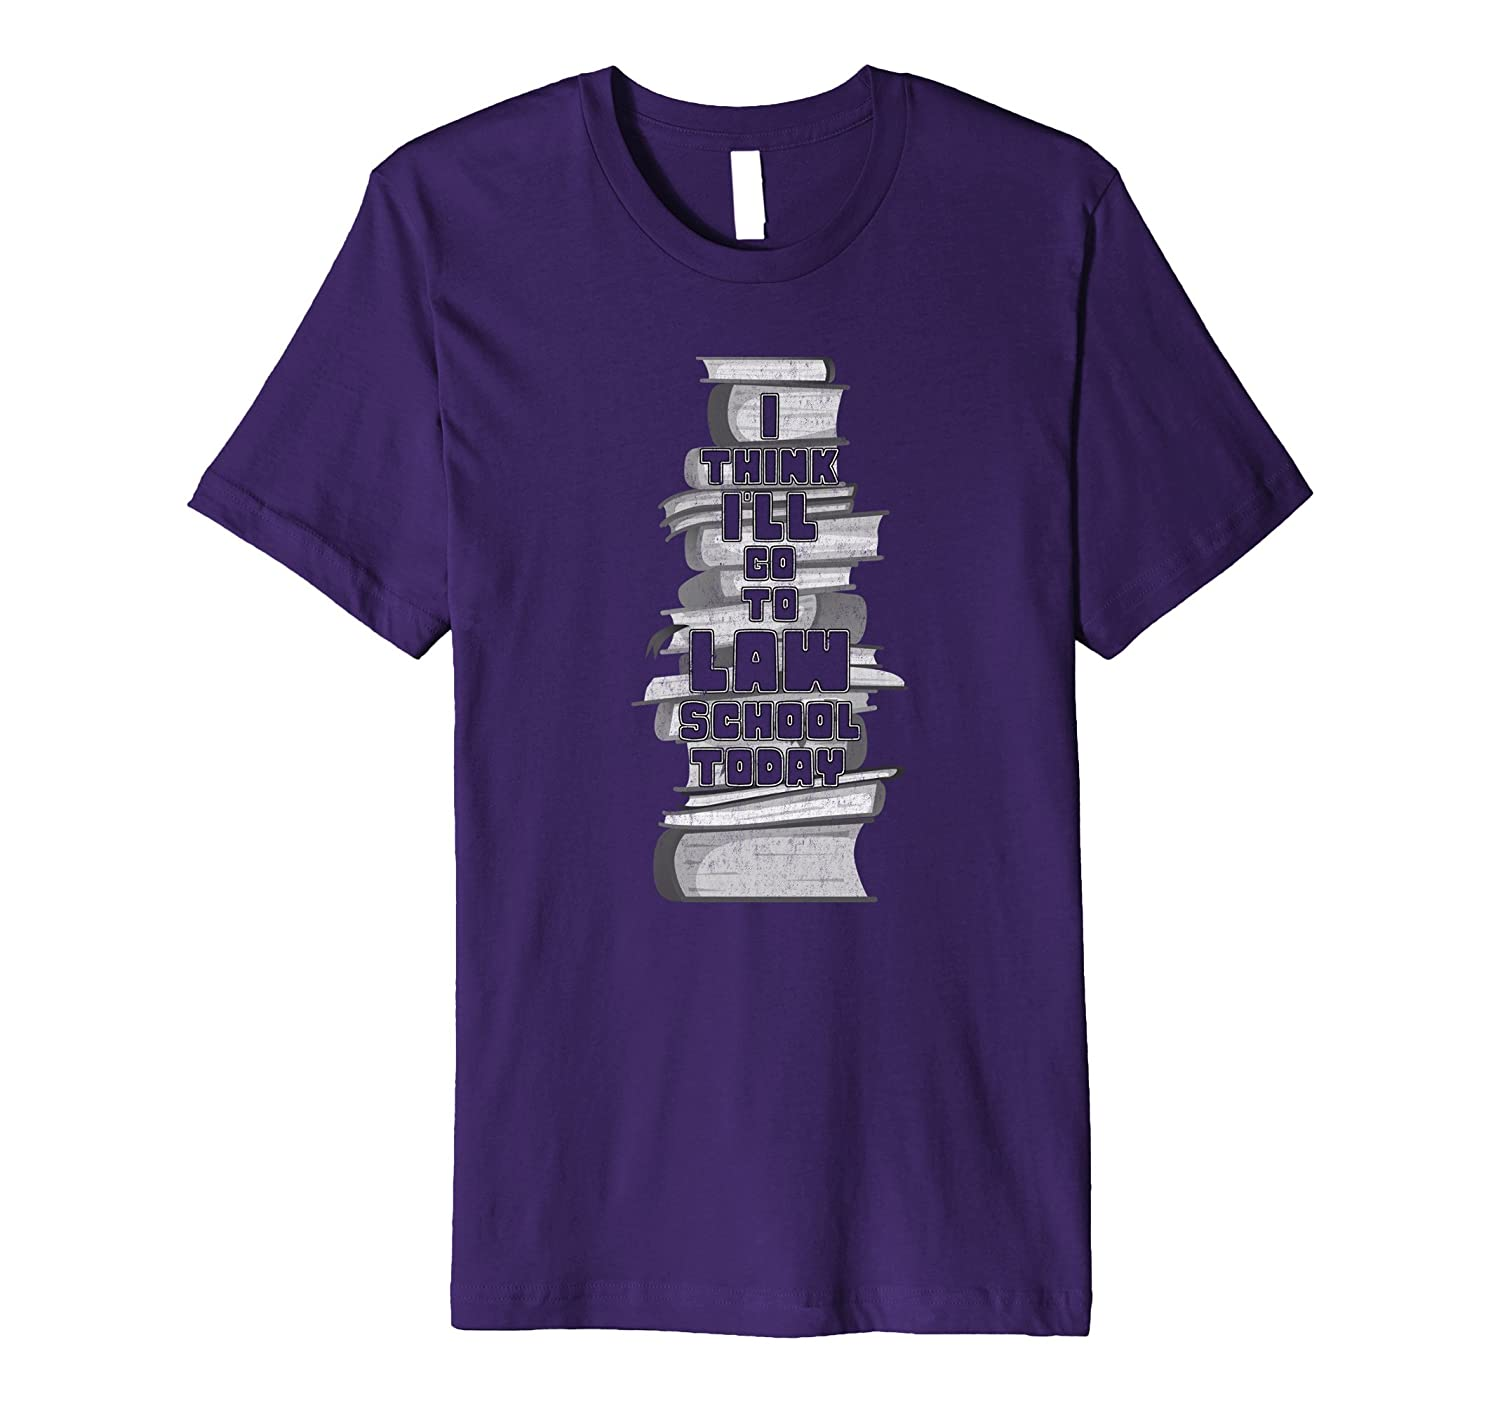 I Think I'll Go to Law School Today - Funny T-shirt-TH